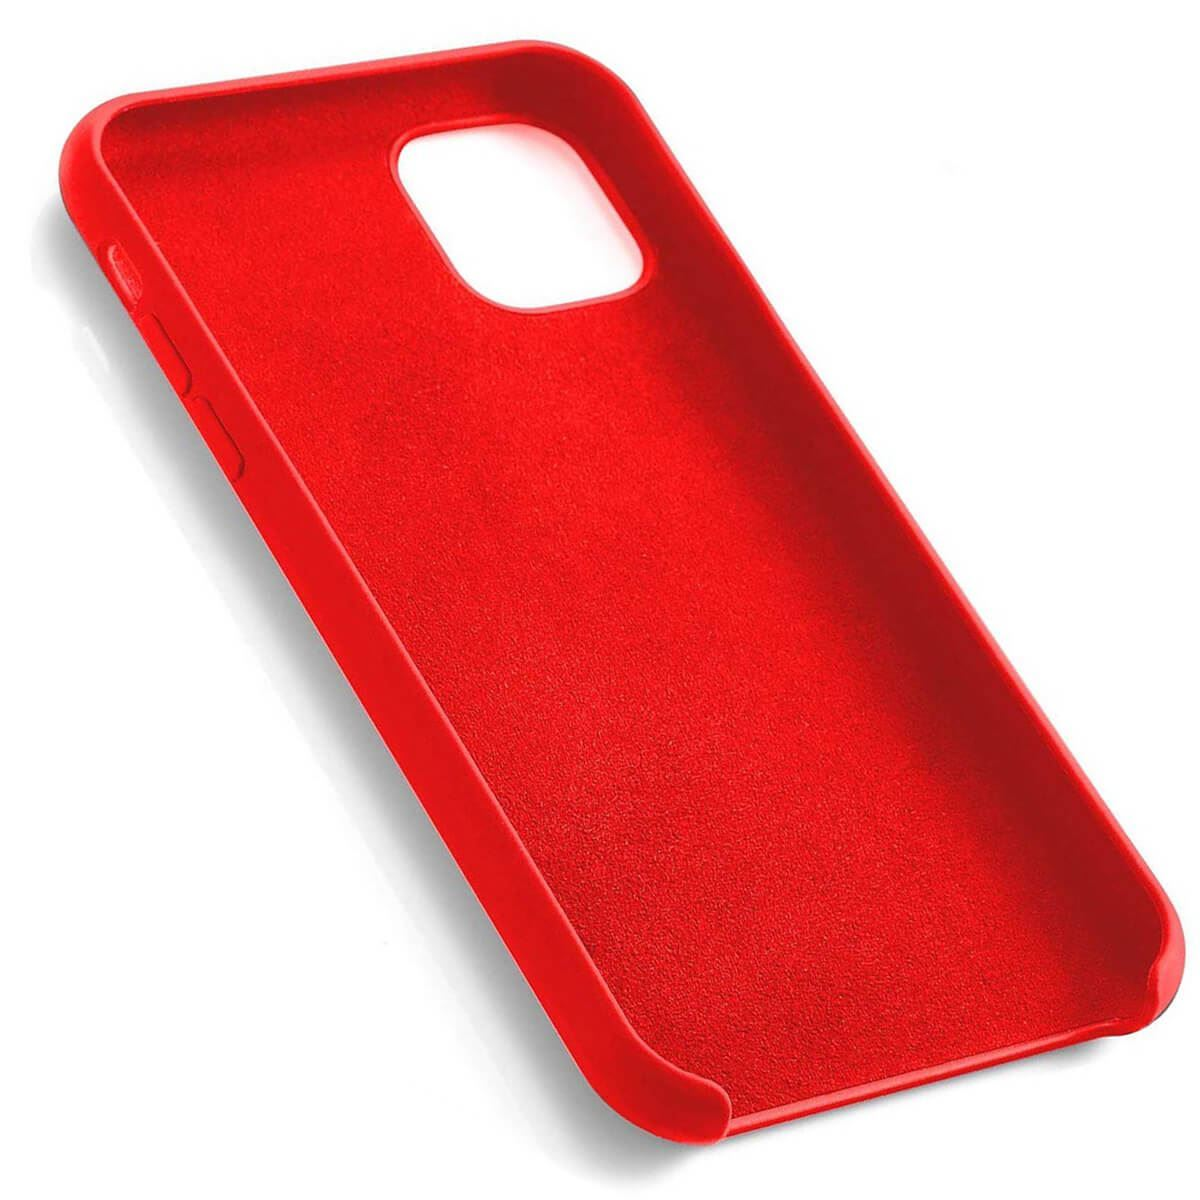 Liquid-Silicone-Shockproof-Case-For-Apple-iPhone-Soft-Matte-Back-Phone-Cover thumbnail 20